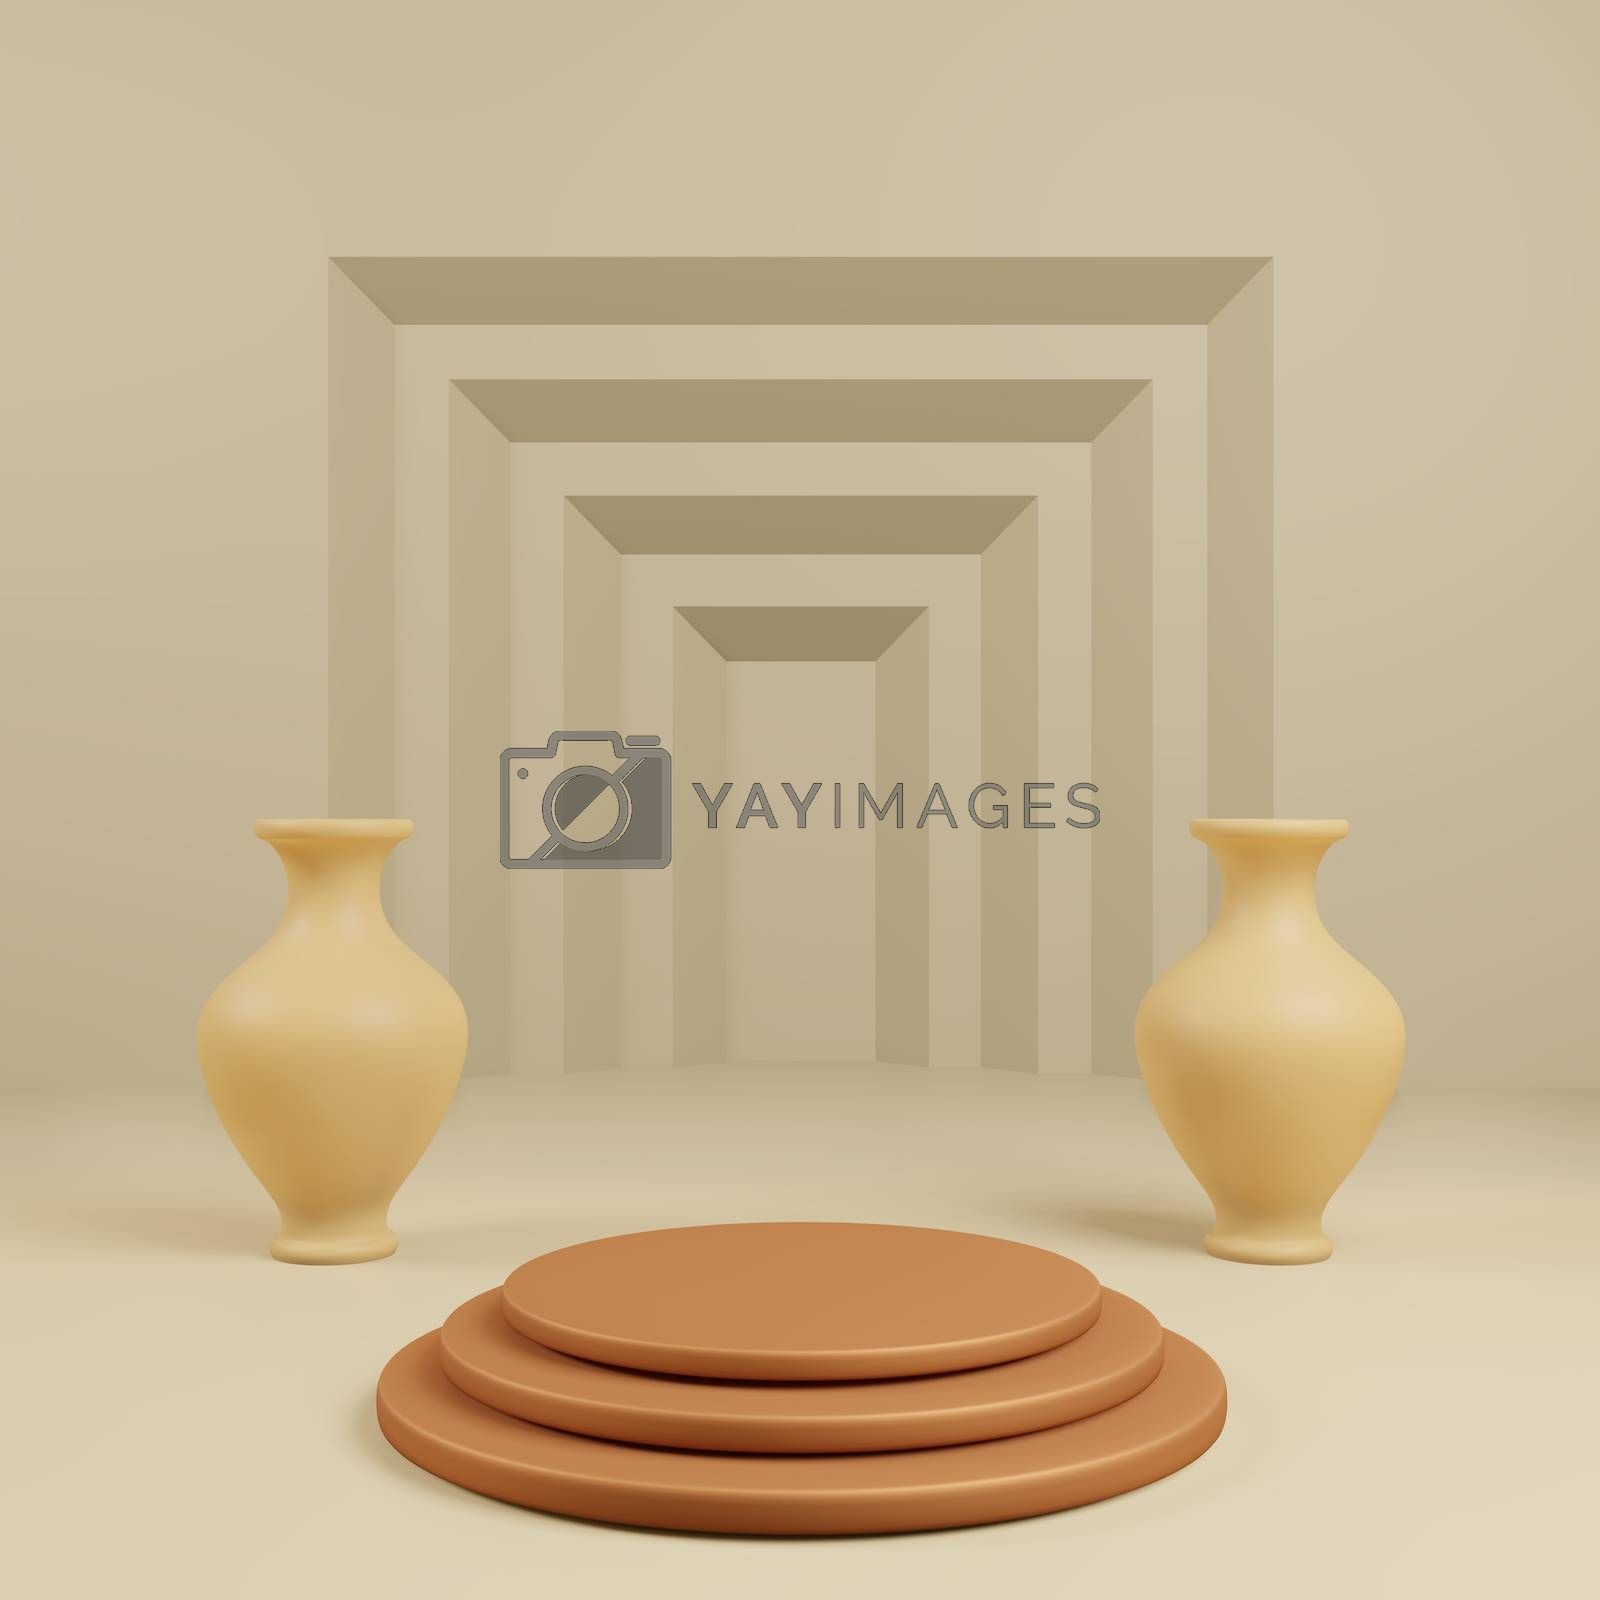 Royalty free image of Podium for show product with vase and step yellow background by eaglesky